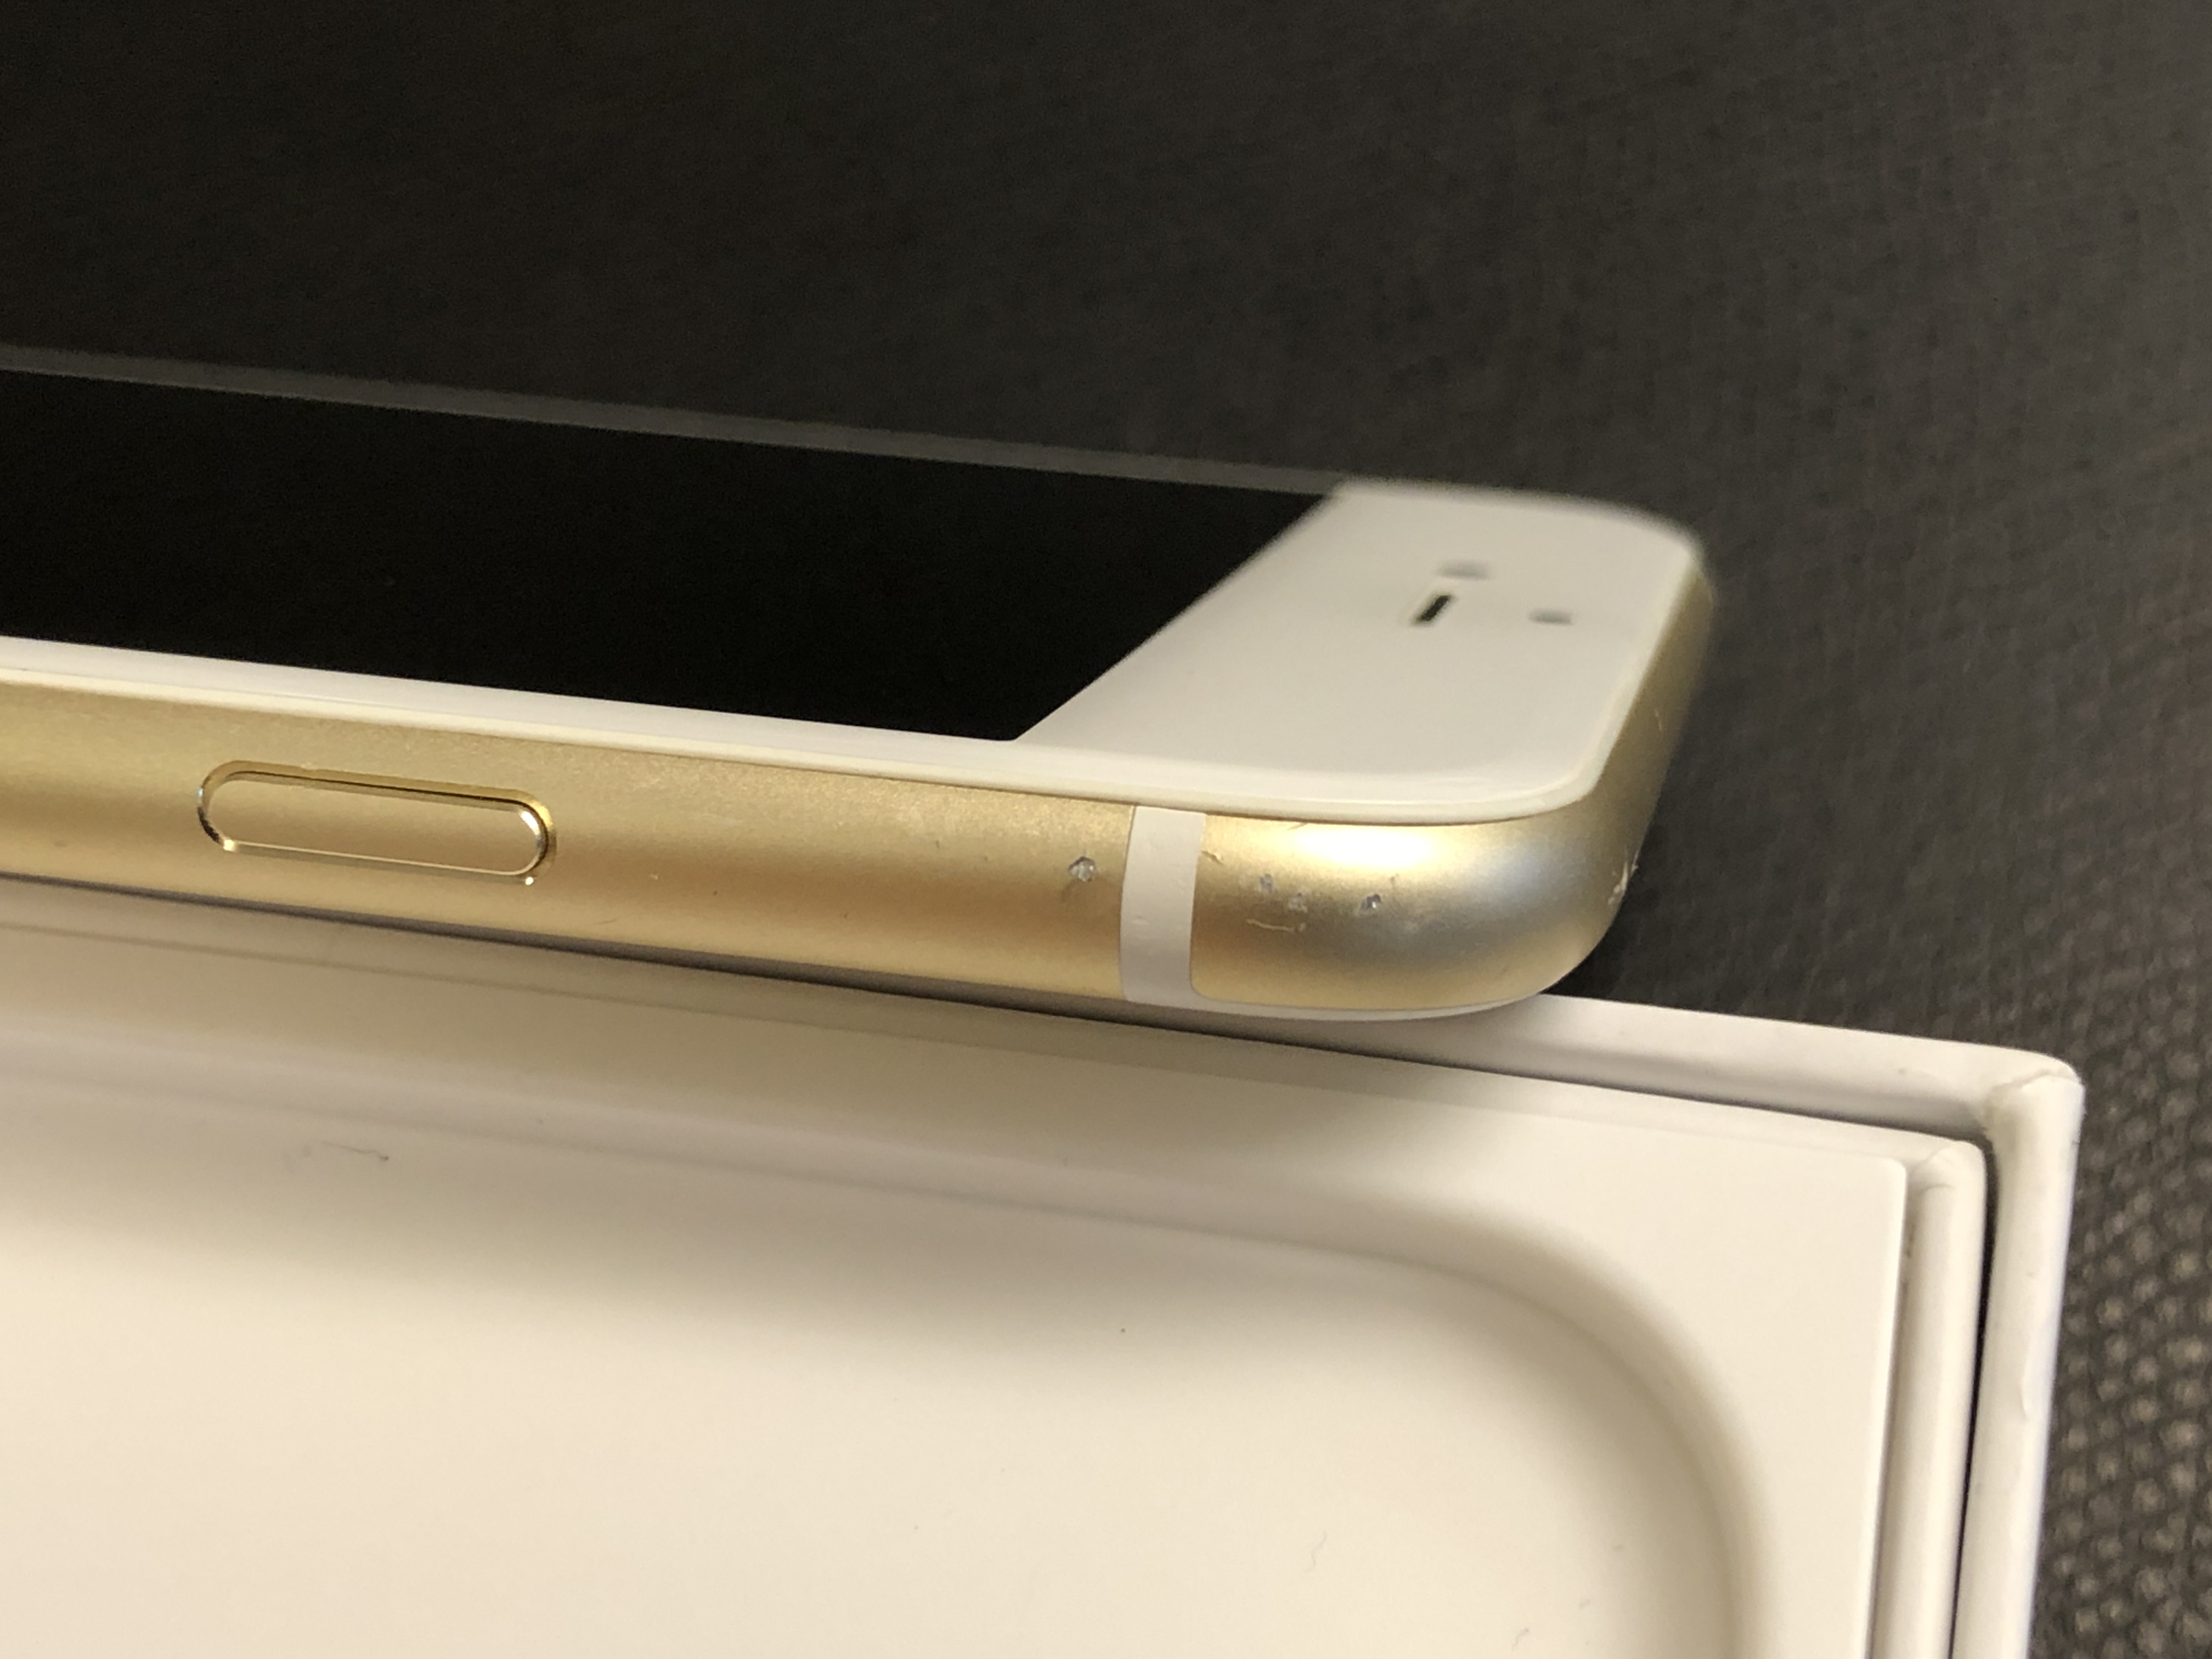 iPhone 6 Plus 128GB, 128GB, Gold, bild 3